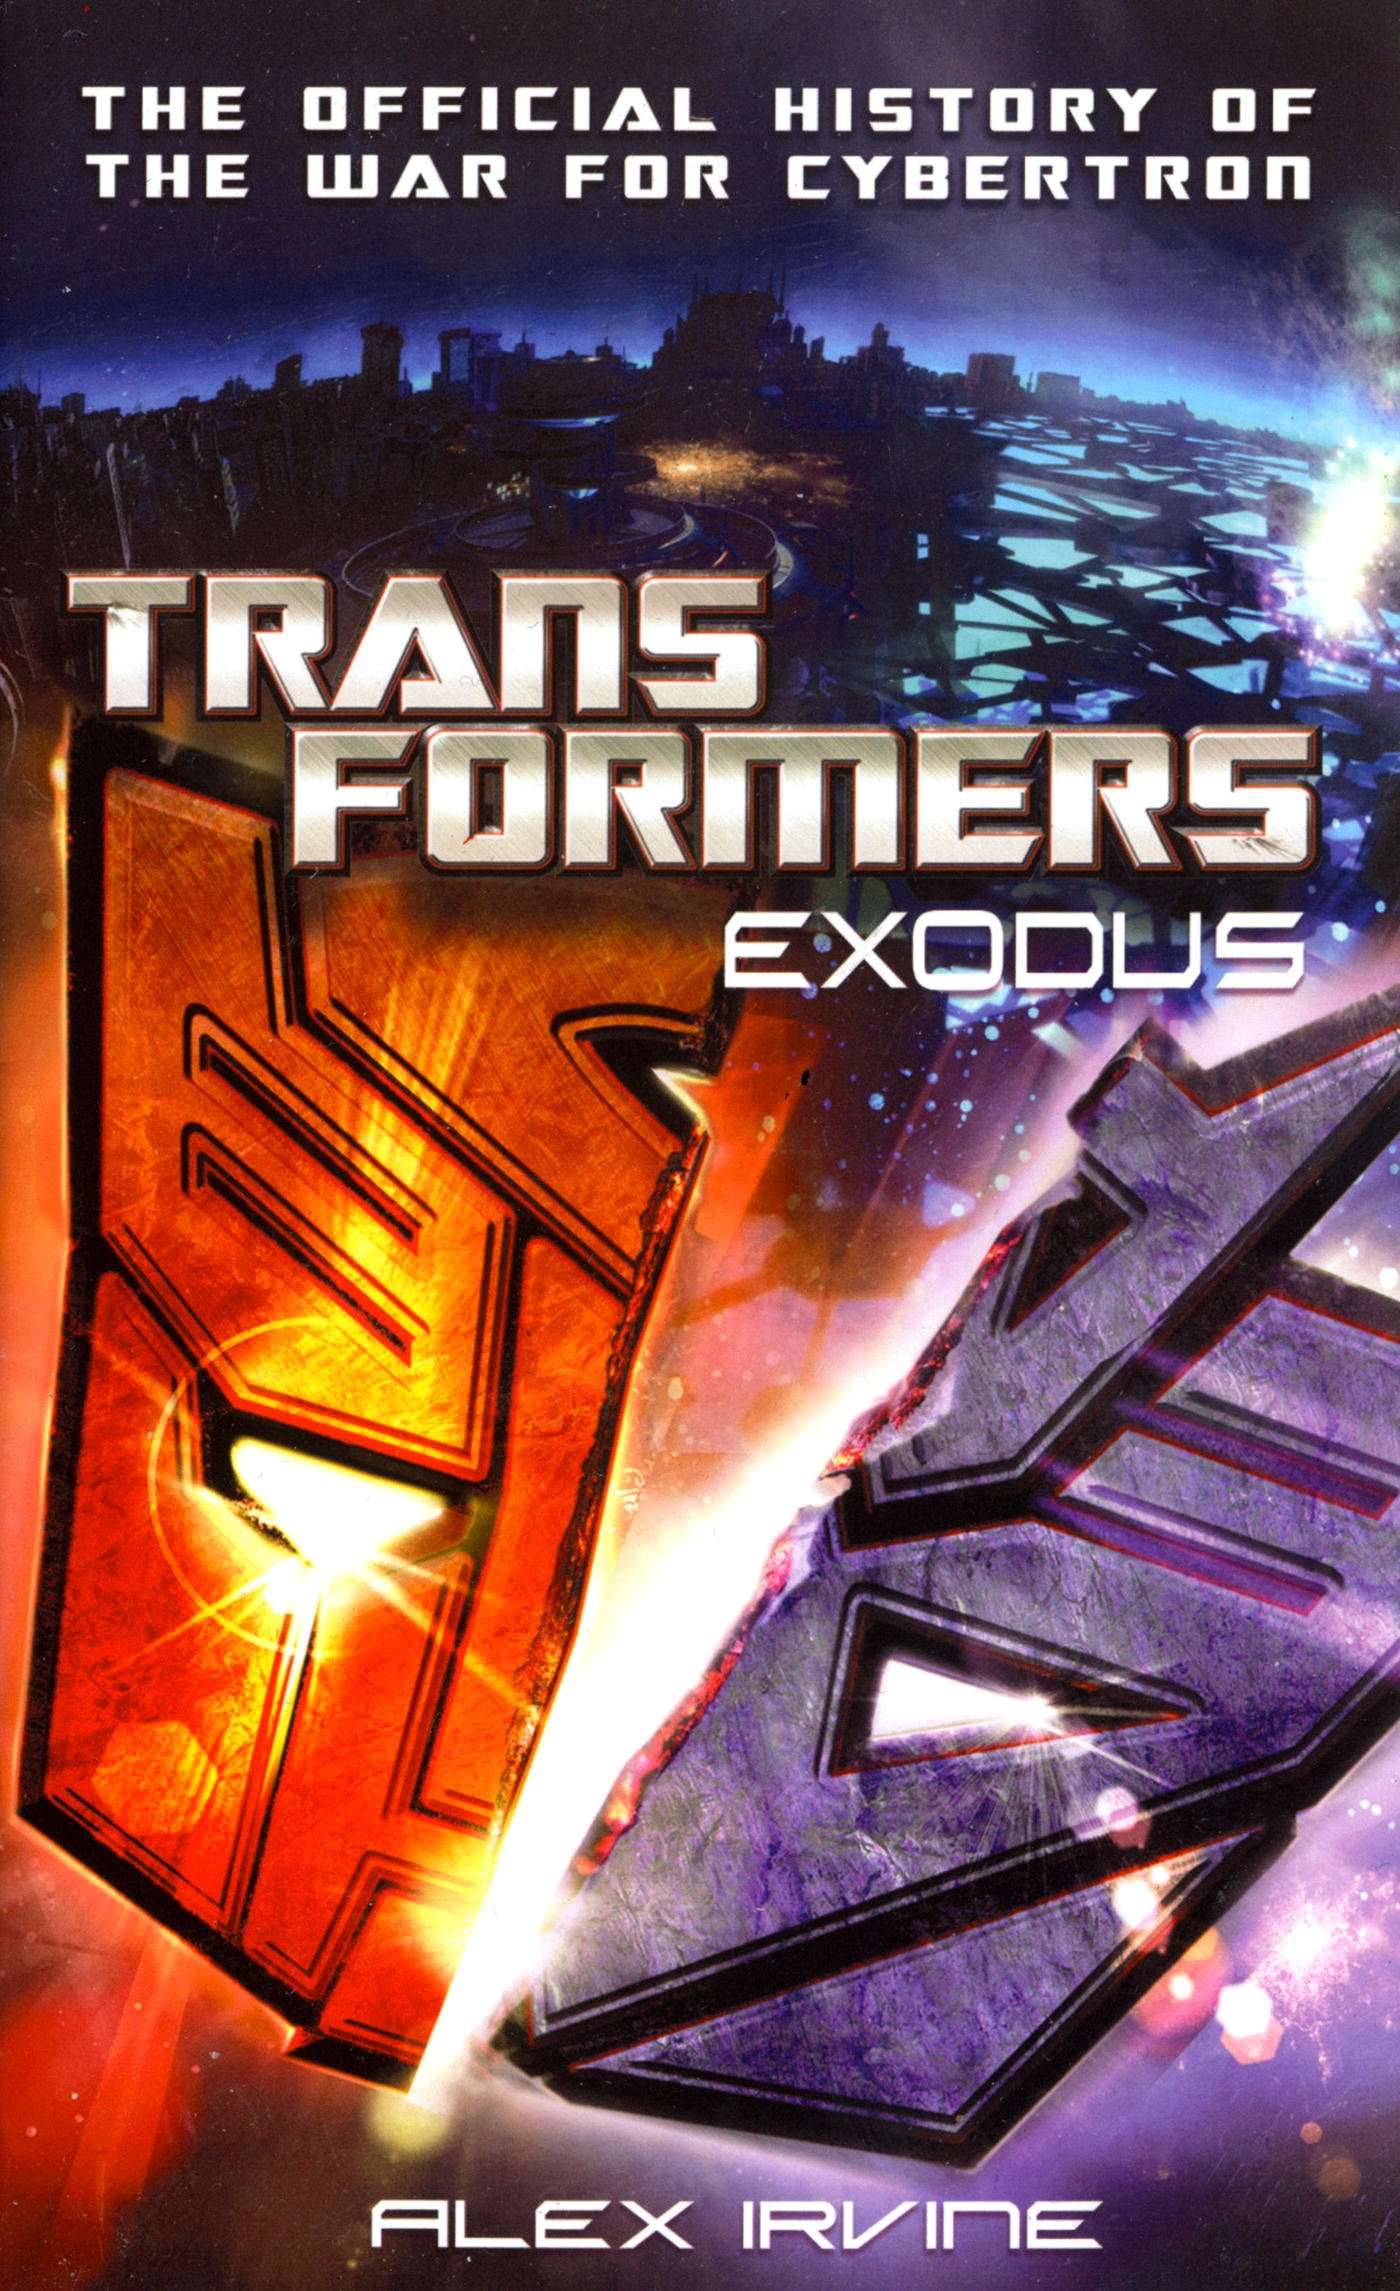 Transformers: Exodus: The Official History of the War for Cybertron (The Transformers)